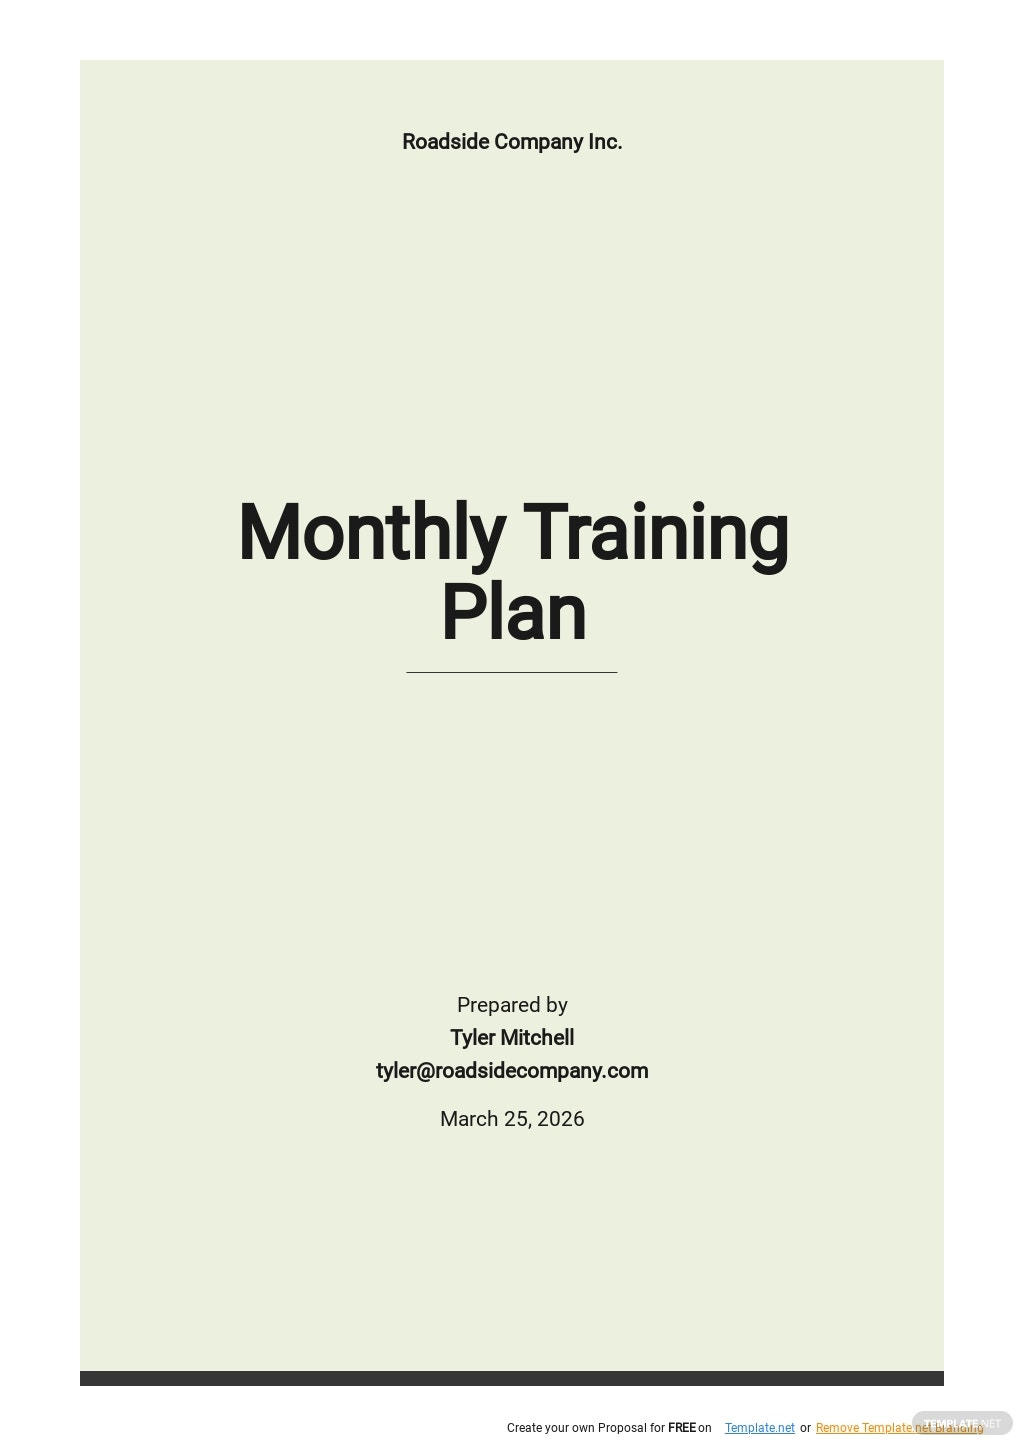 Monthly Training Plan Template.jpe